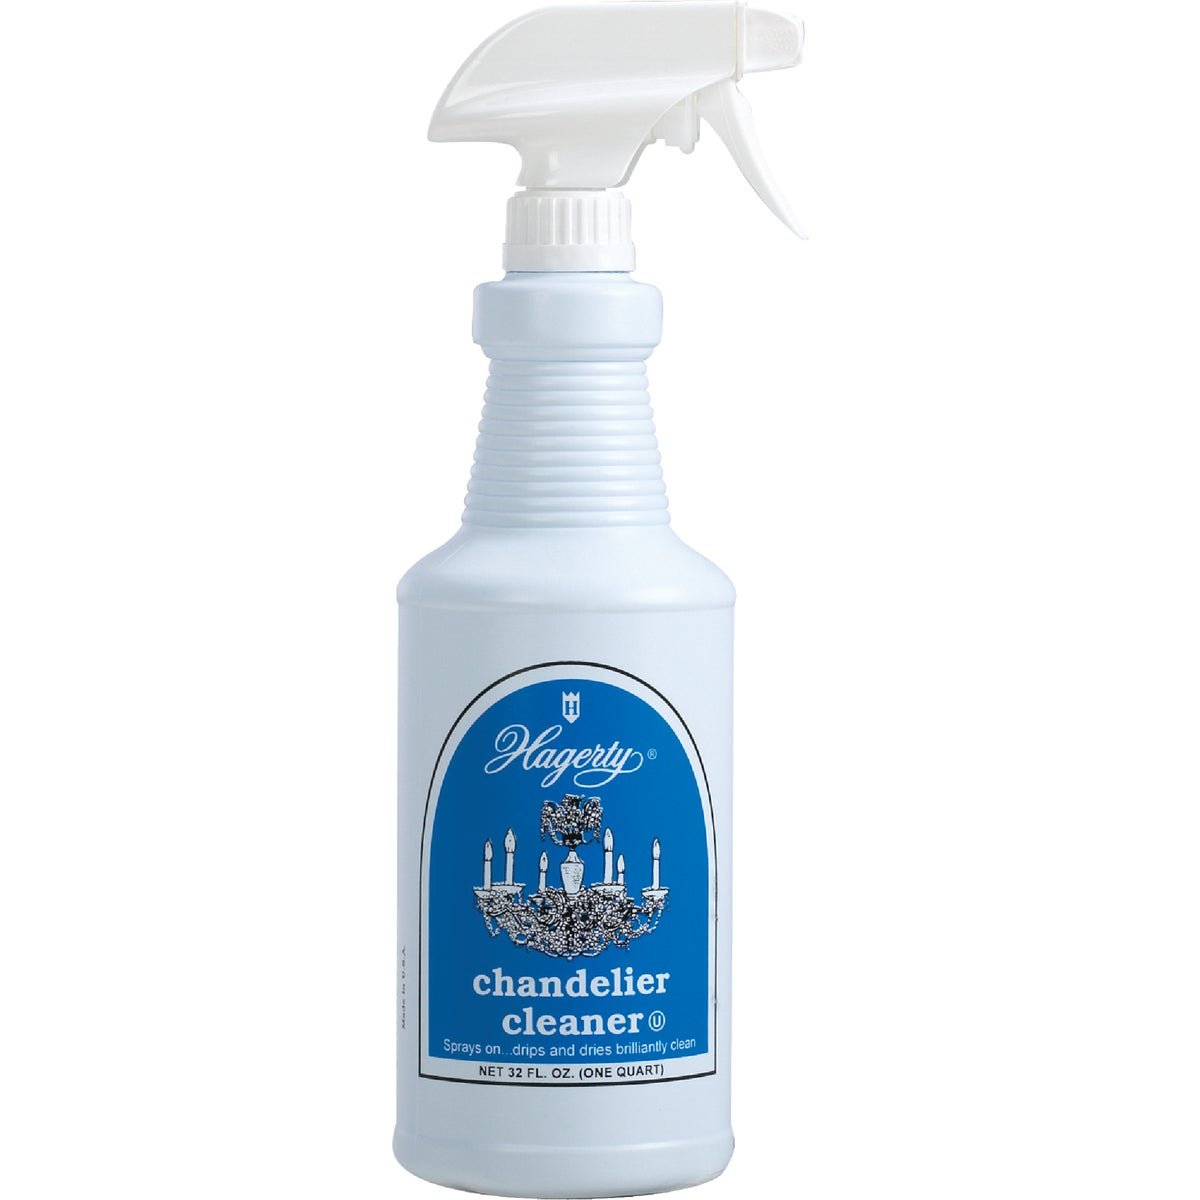 CHANDELIER CLEANER - 91320 by W J Hagerty & Sons